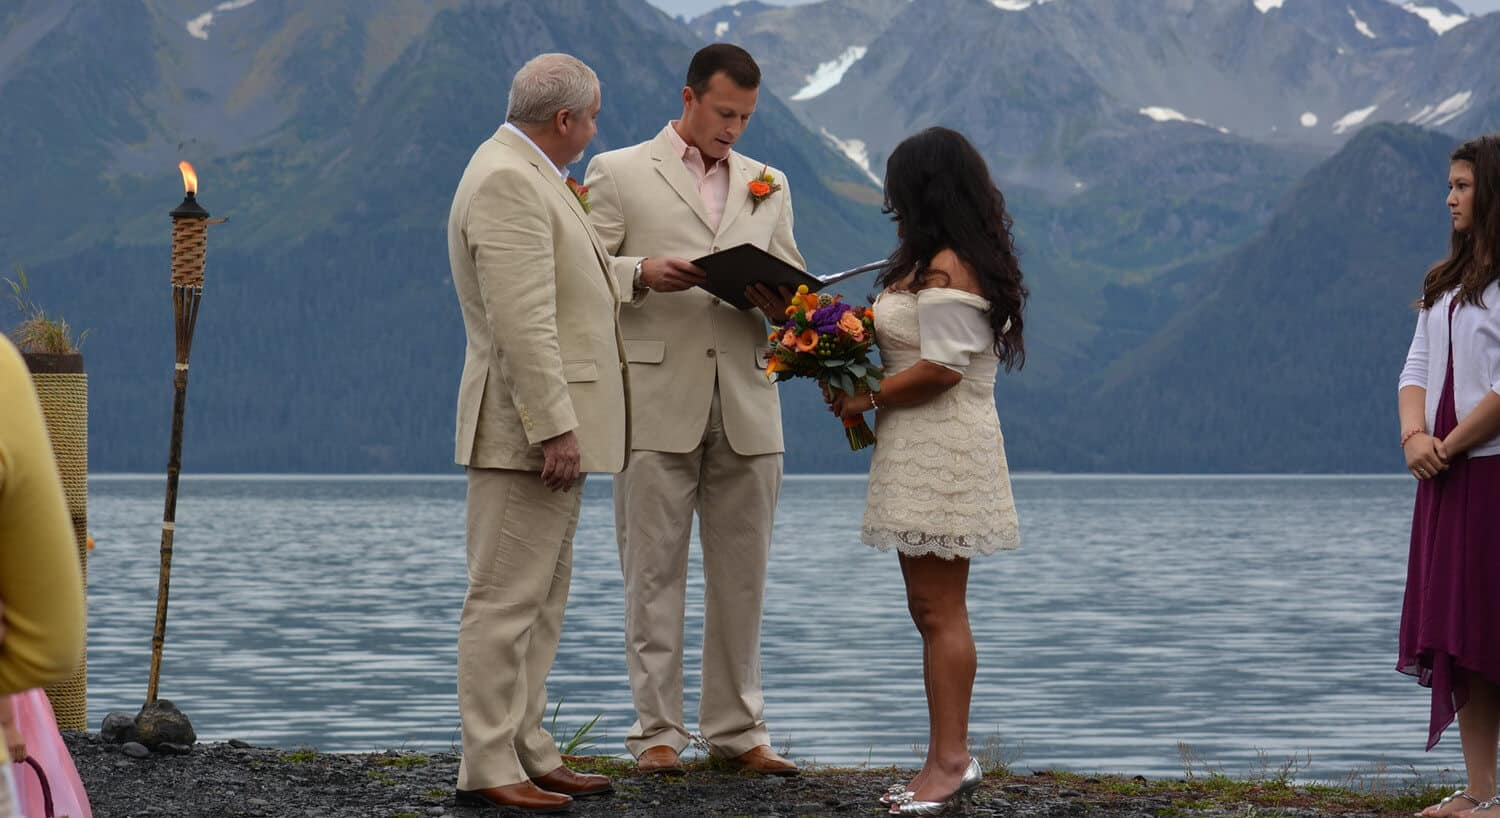 preacher performing wedding ceremony with bride and groom in cream clothing standing along edge of water with lit tiki torch mountain in background